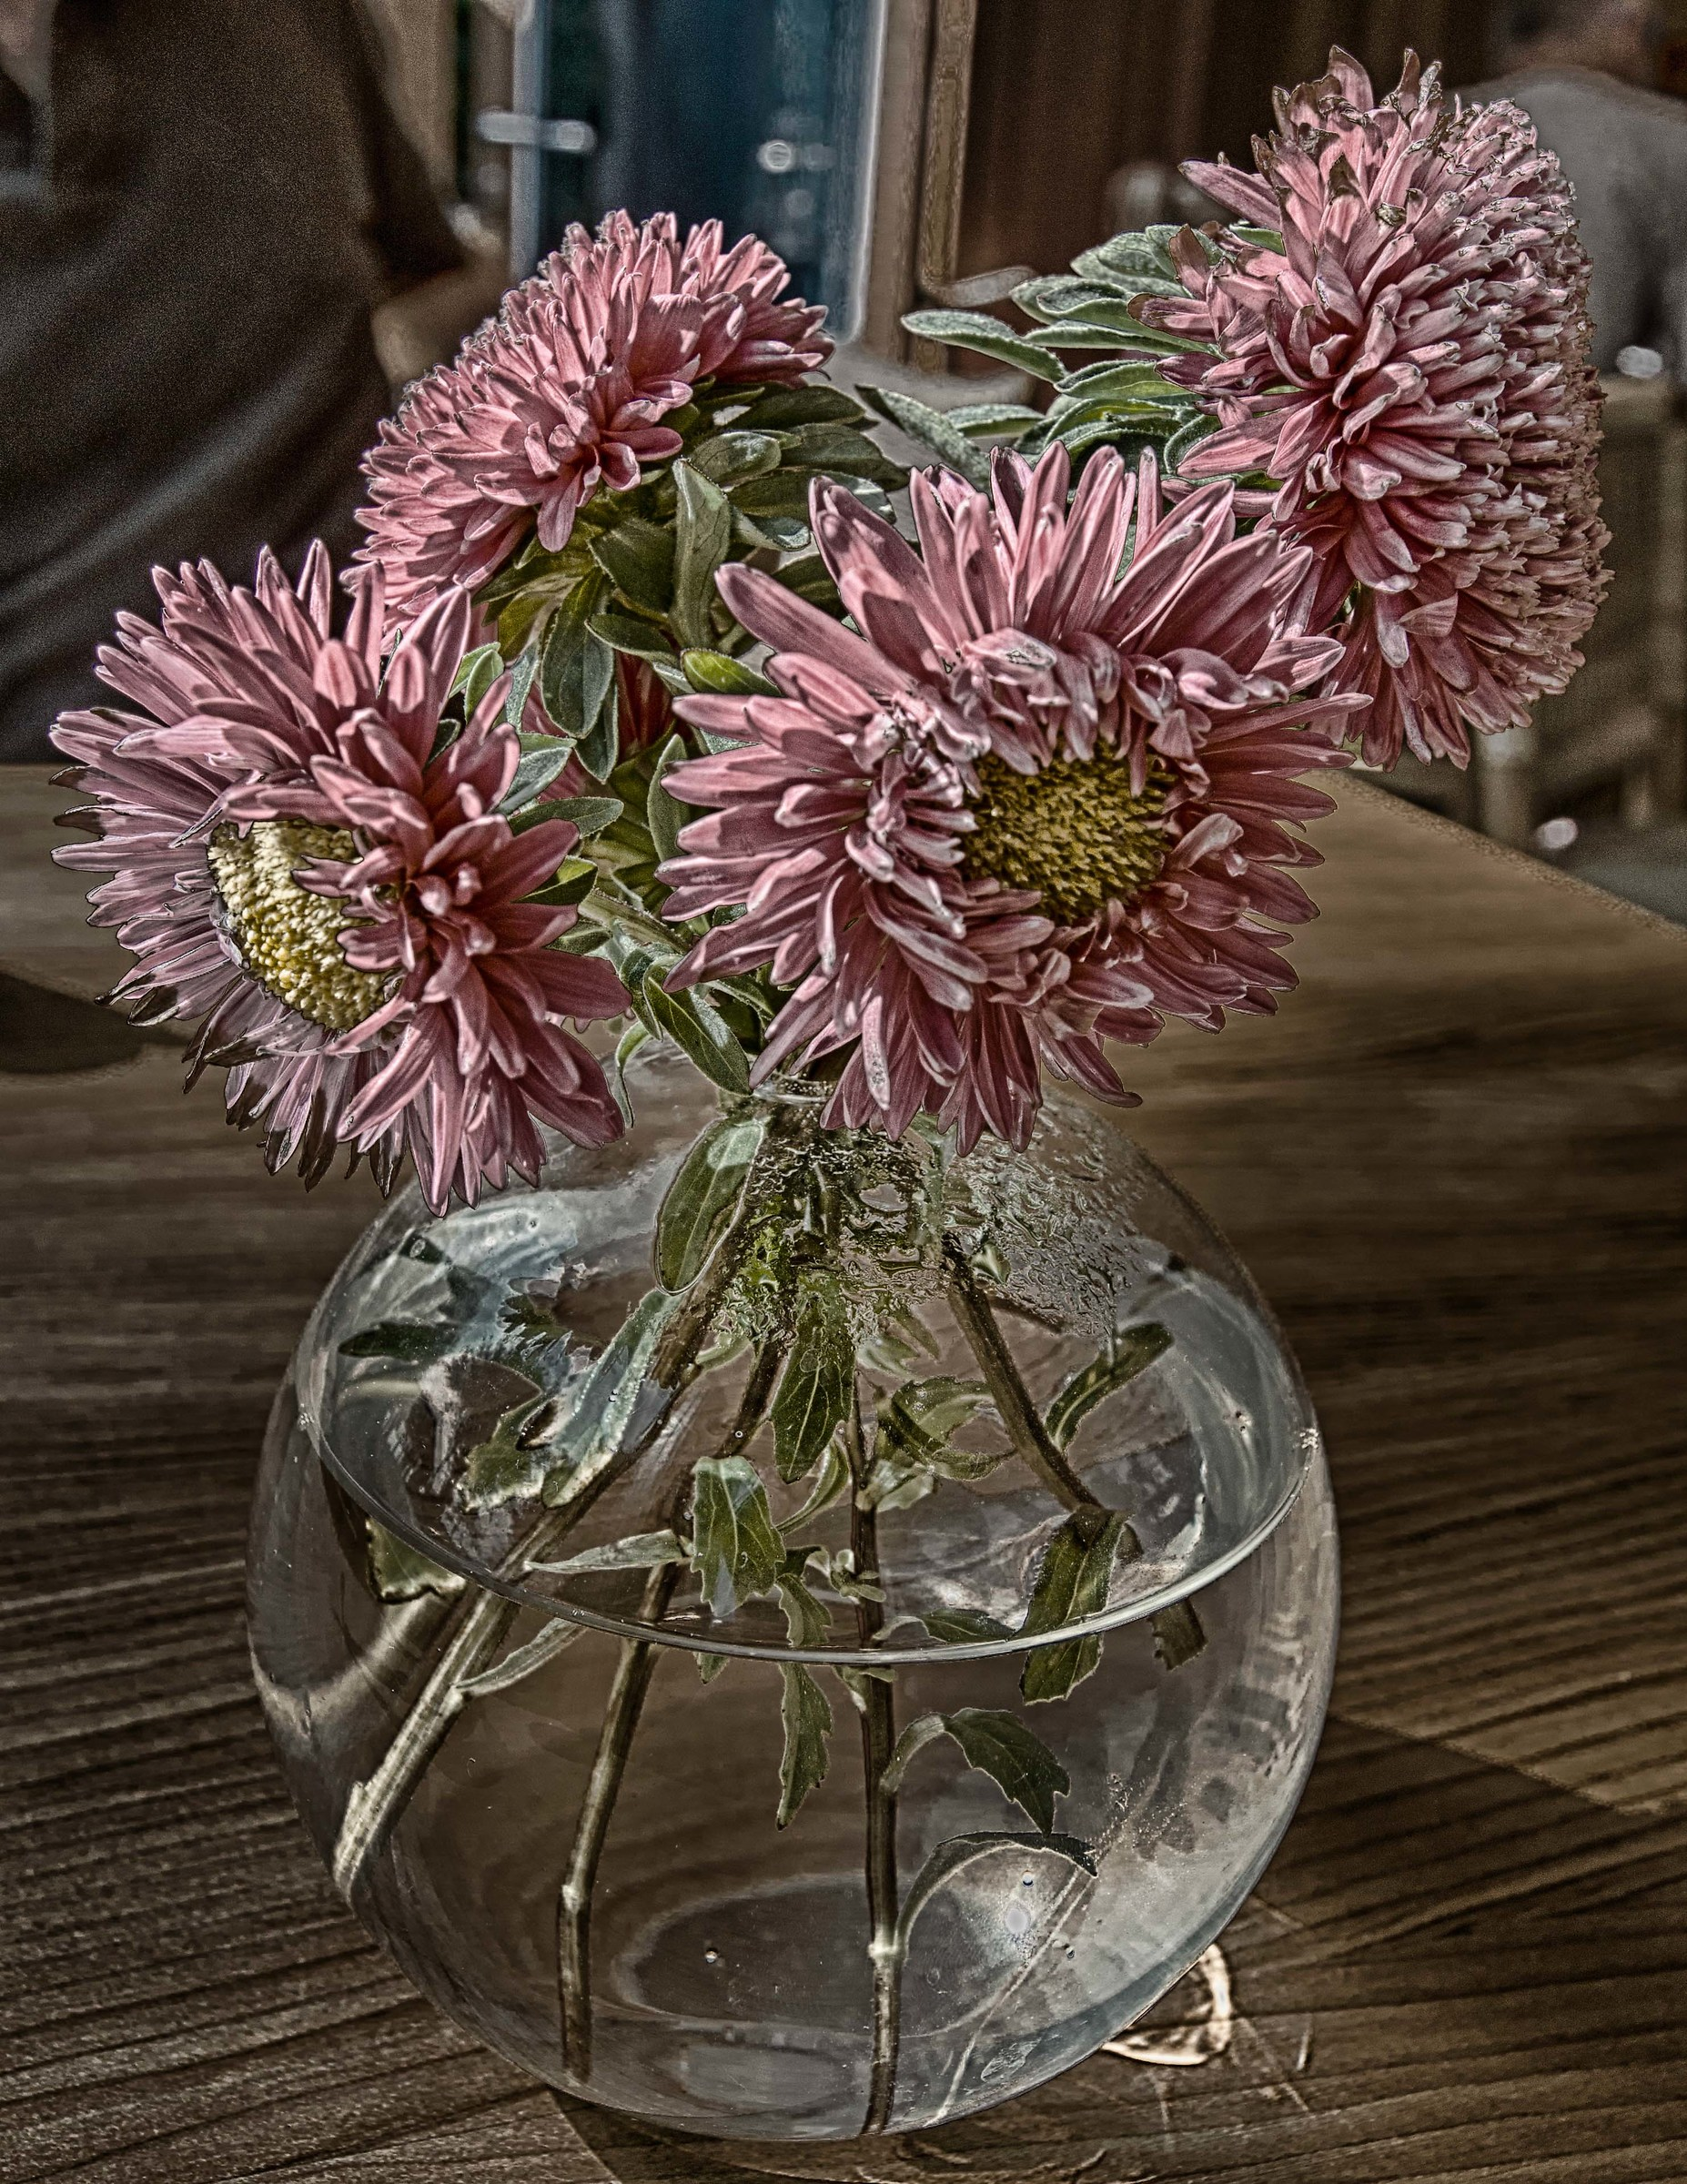 Asters on the table of a bar...